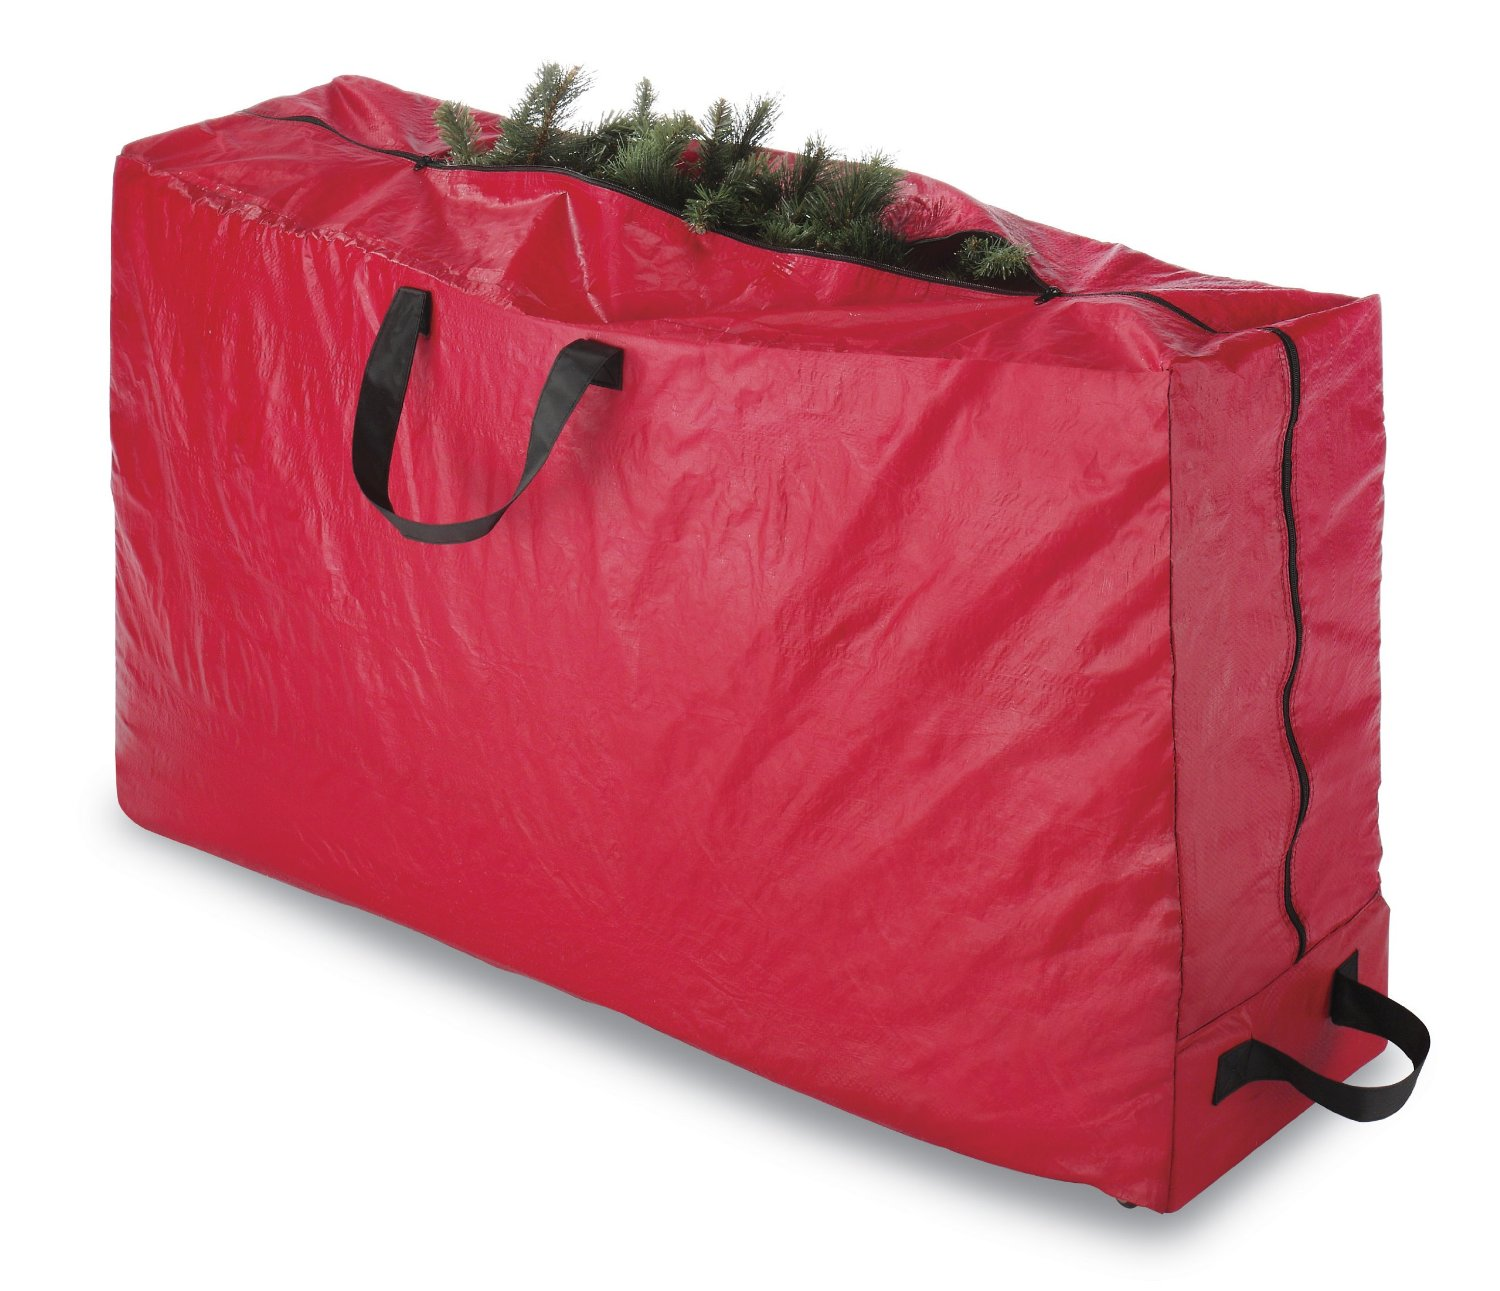 Christmas Tree Bag With Wheels By Whitmor